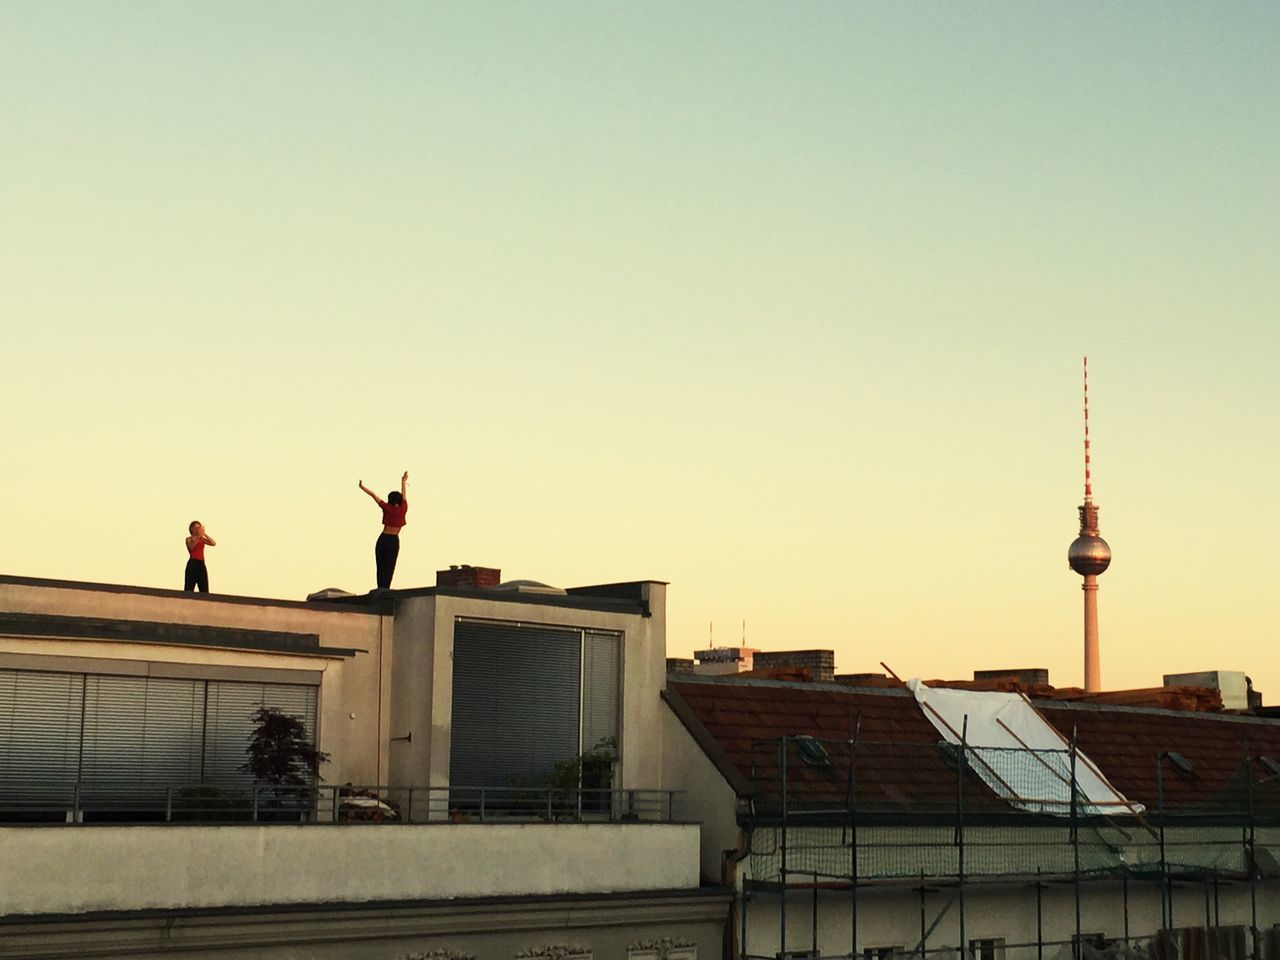 Architecture Building Exterior Clear Sky Copy Space Real People Shooting Model Fernsehturm Skyline Sky Silhouette Young Women Young Adult Posing Rooftop Models Modeling